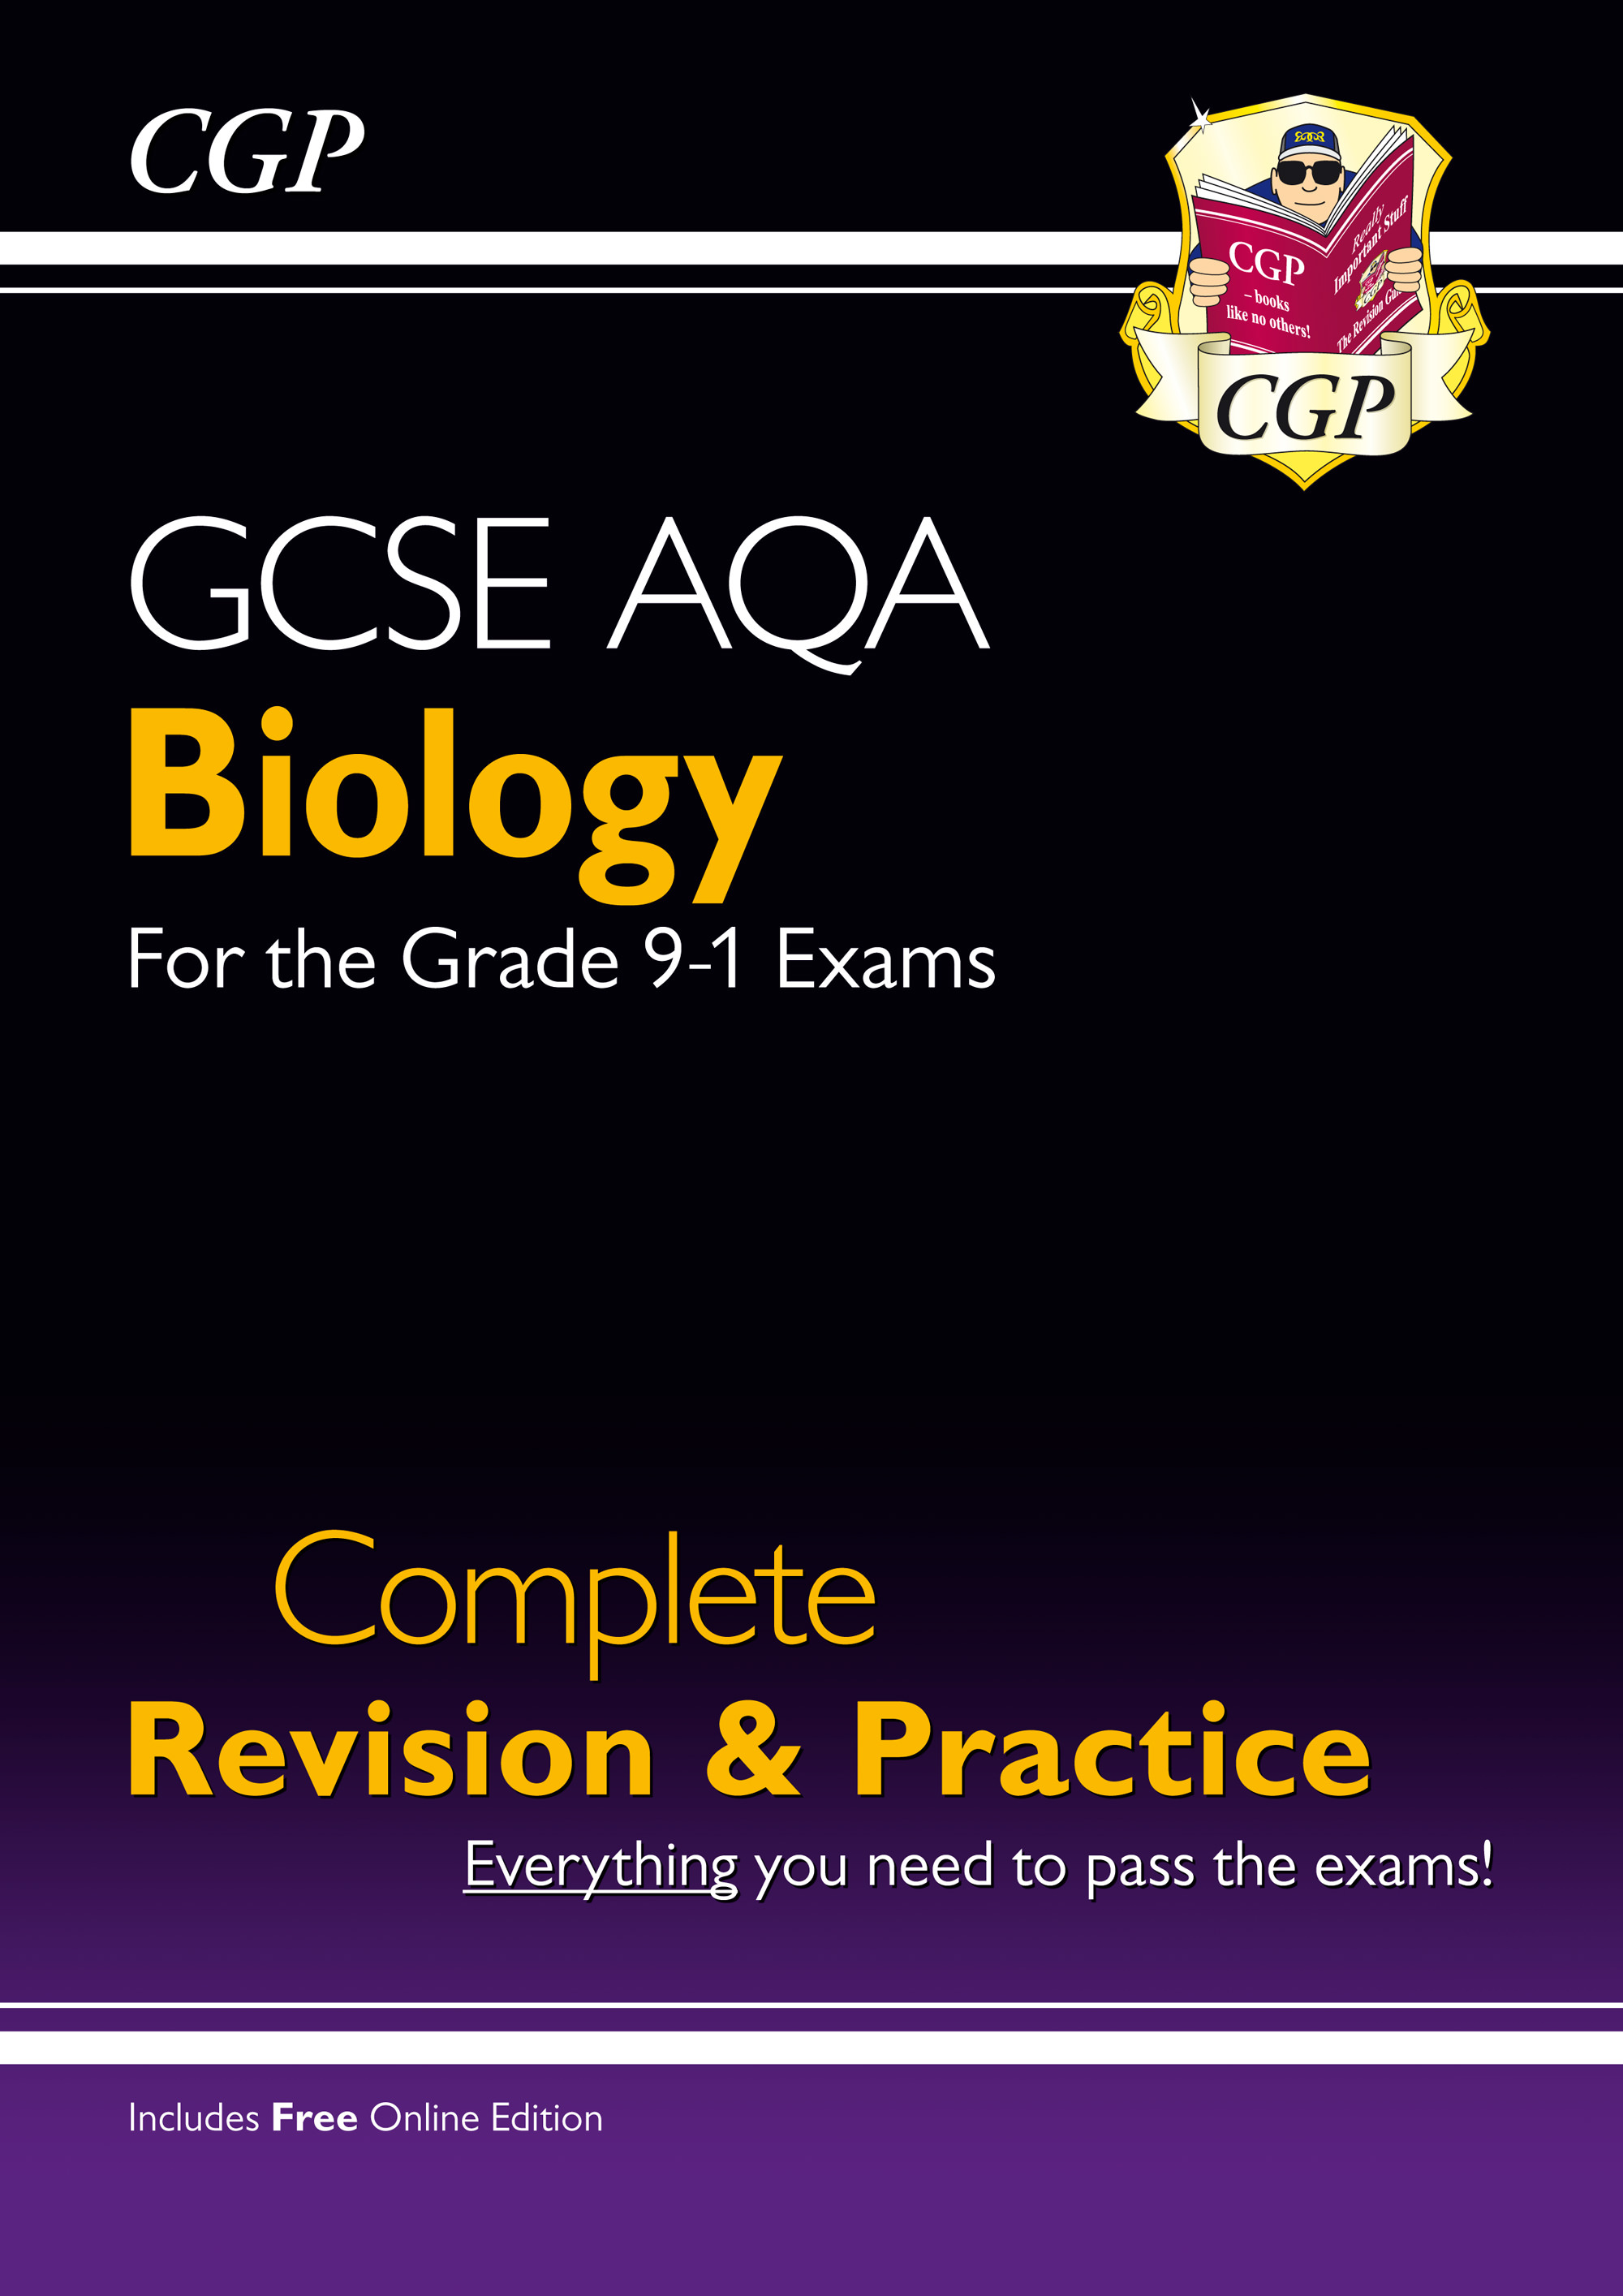 BAS45 - Grade 9-1 GCSE Biology AQA Complete Revision & Practice with Online Edition